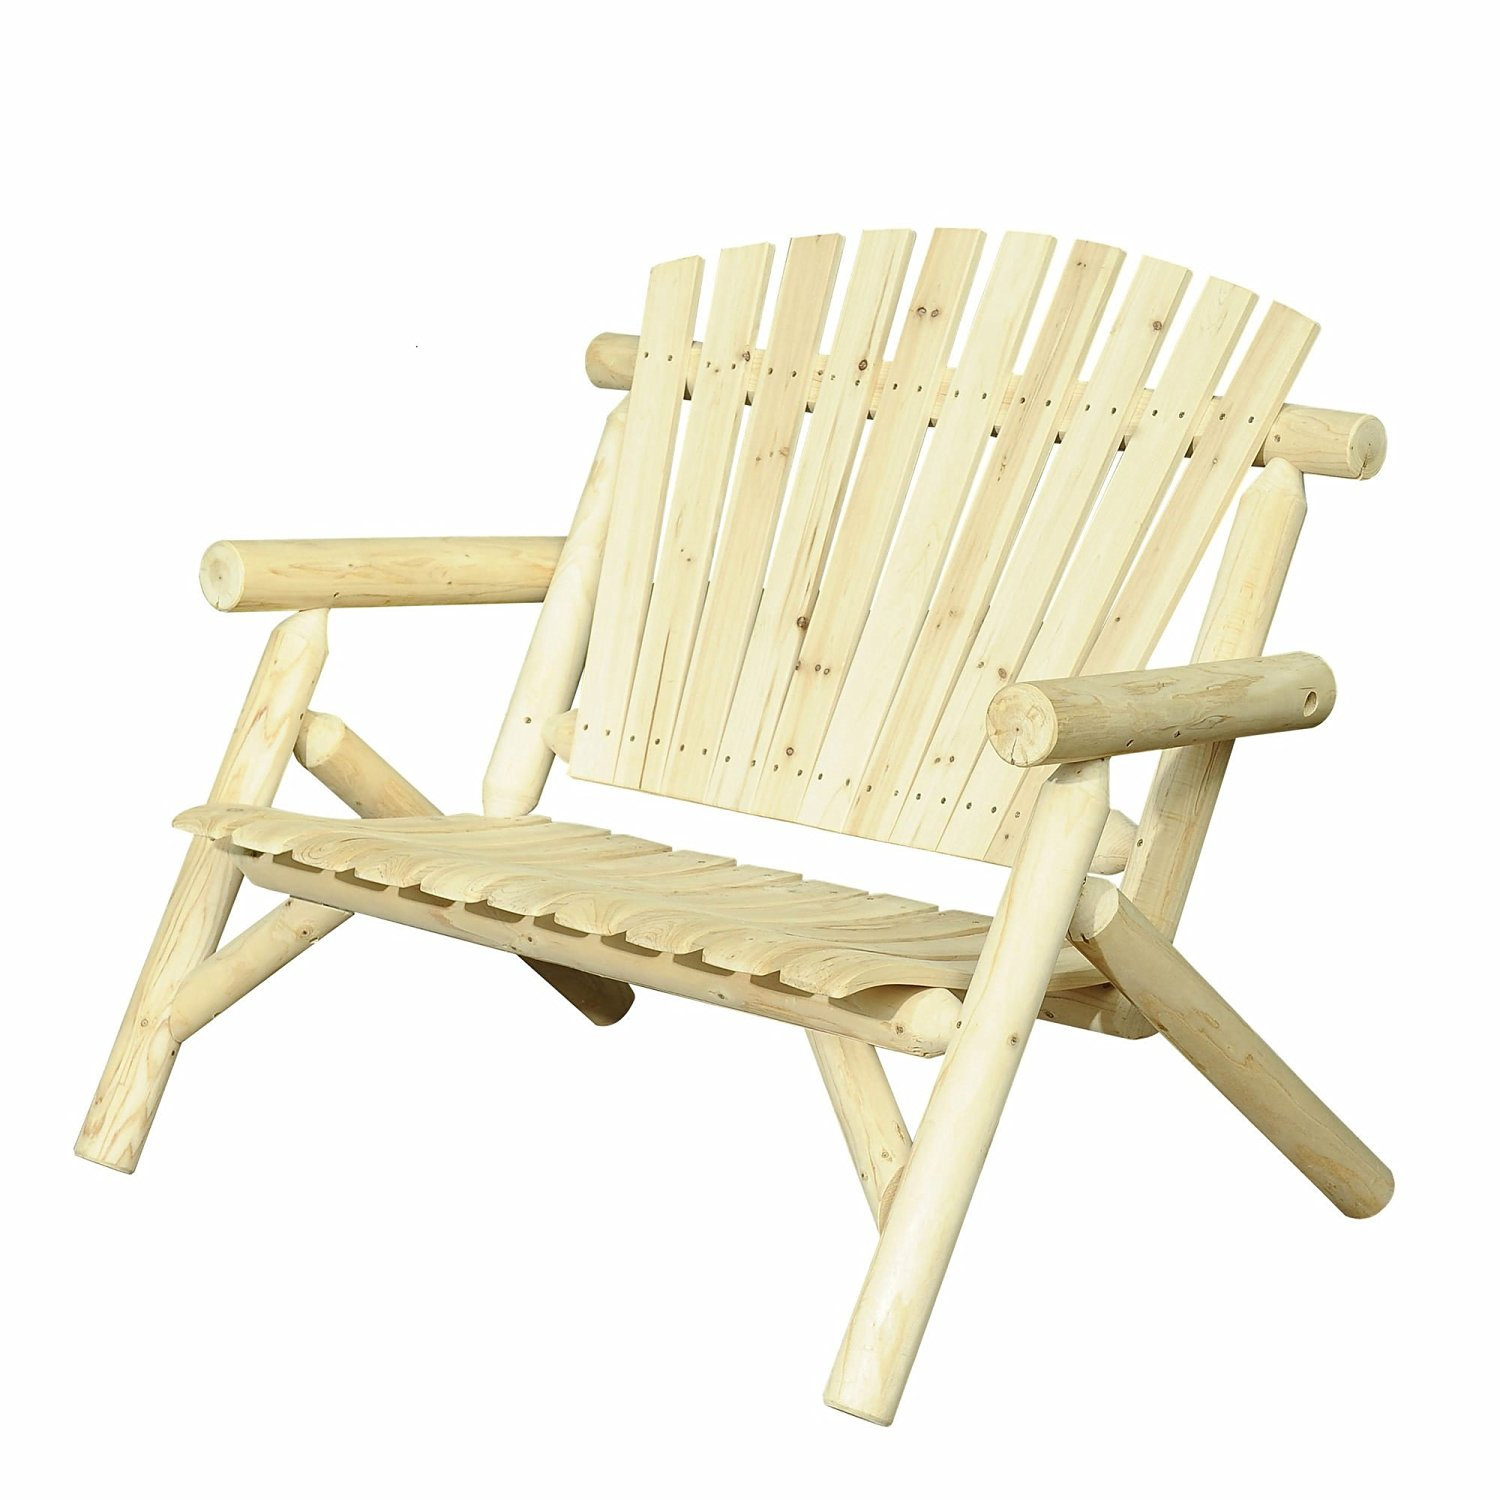 Get Quotations · Patio Chairs In Wood, Bench Chair As Garden Furniture,Lawn  Chair,Patio Furniture